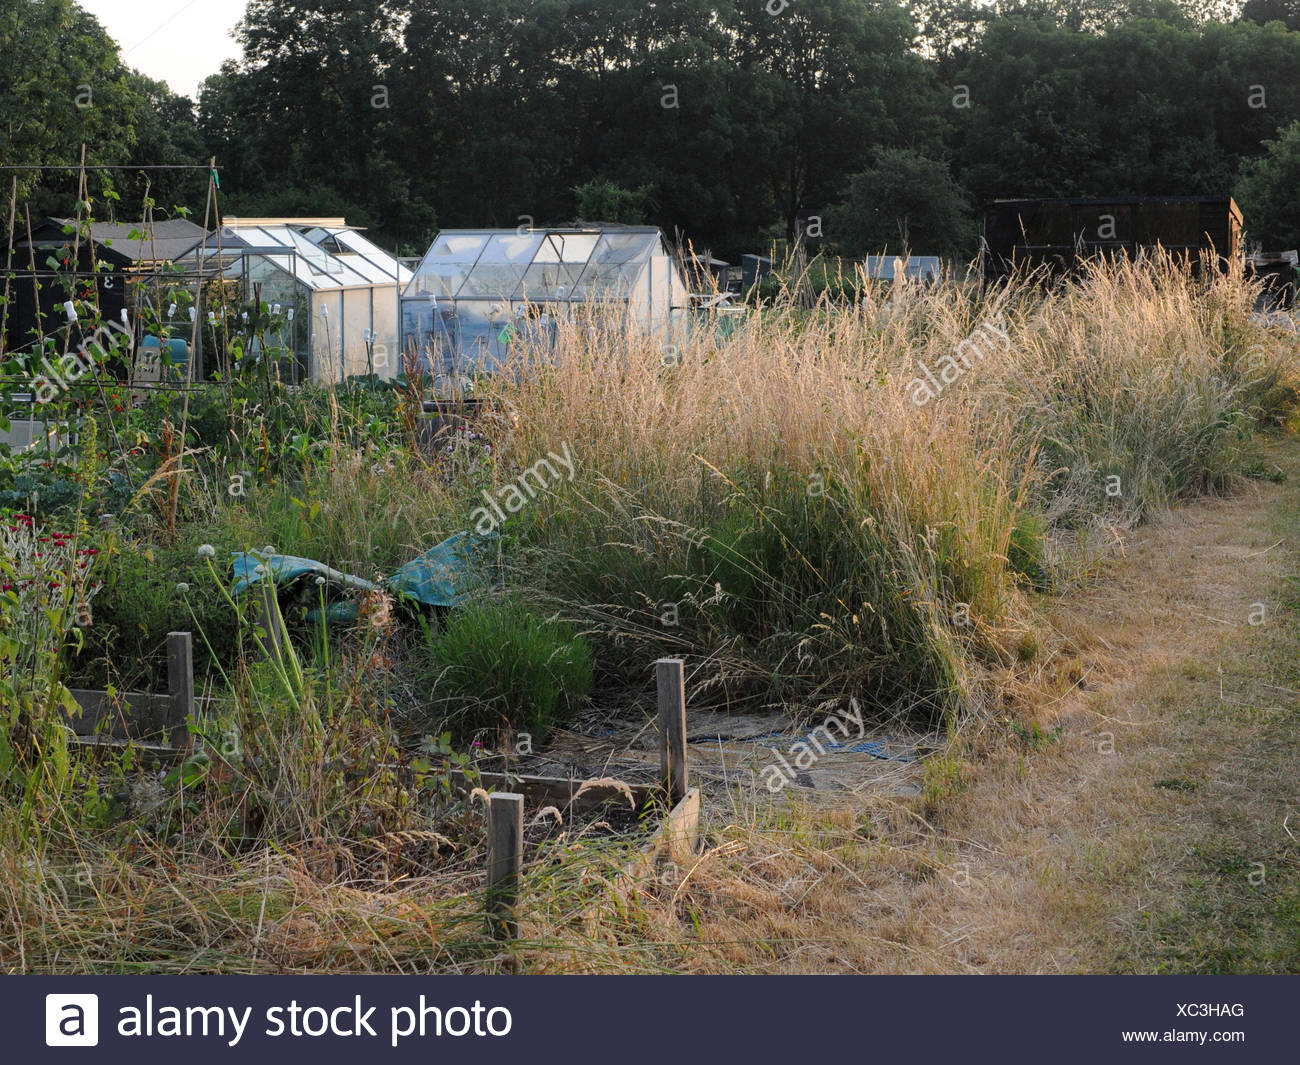 An overgrown allotment plot that is vacant. - Stock Image